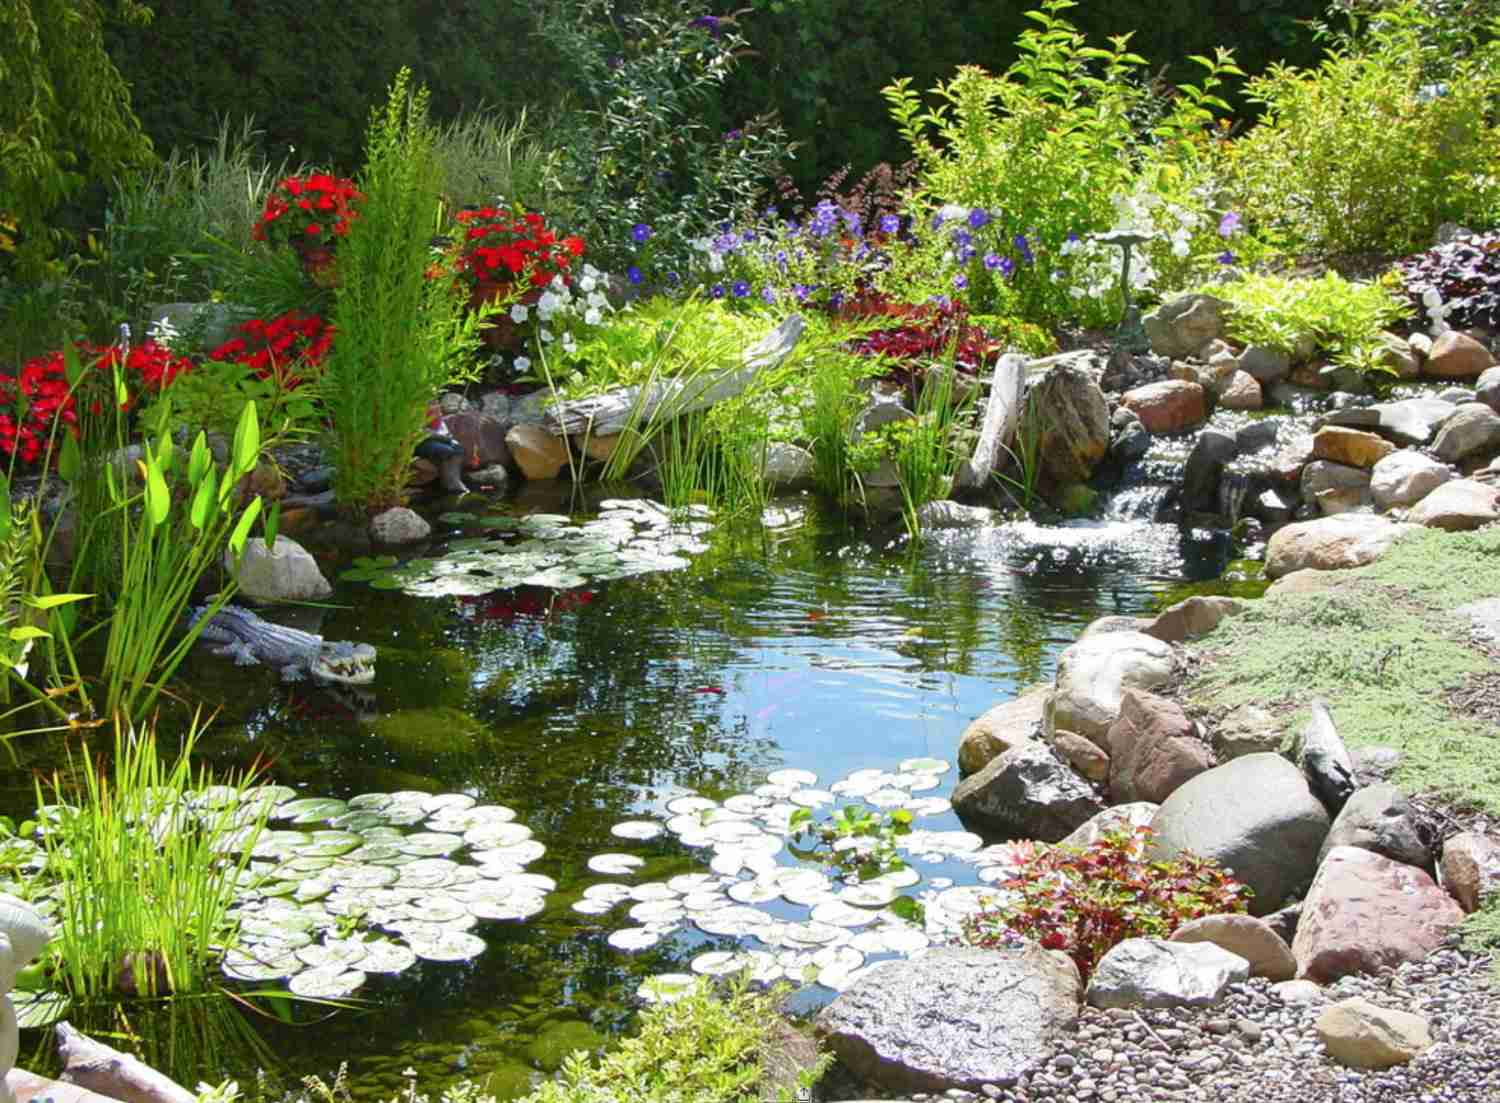 25 Pond Waterfall Designs And Ideas within Backyard Pond Ideas With Waterfall